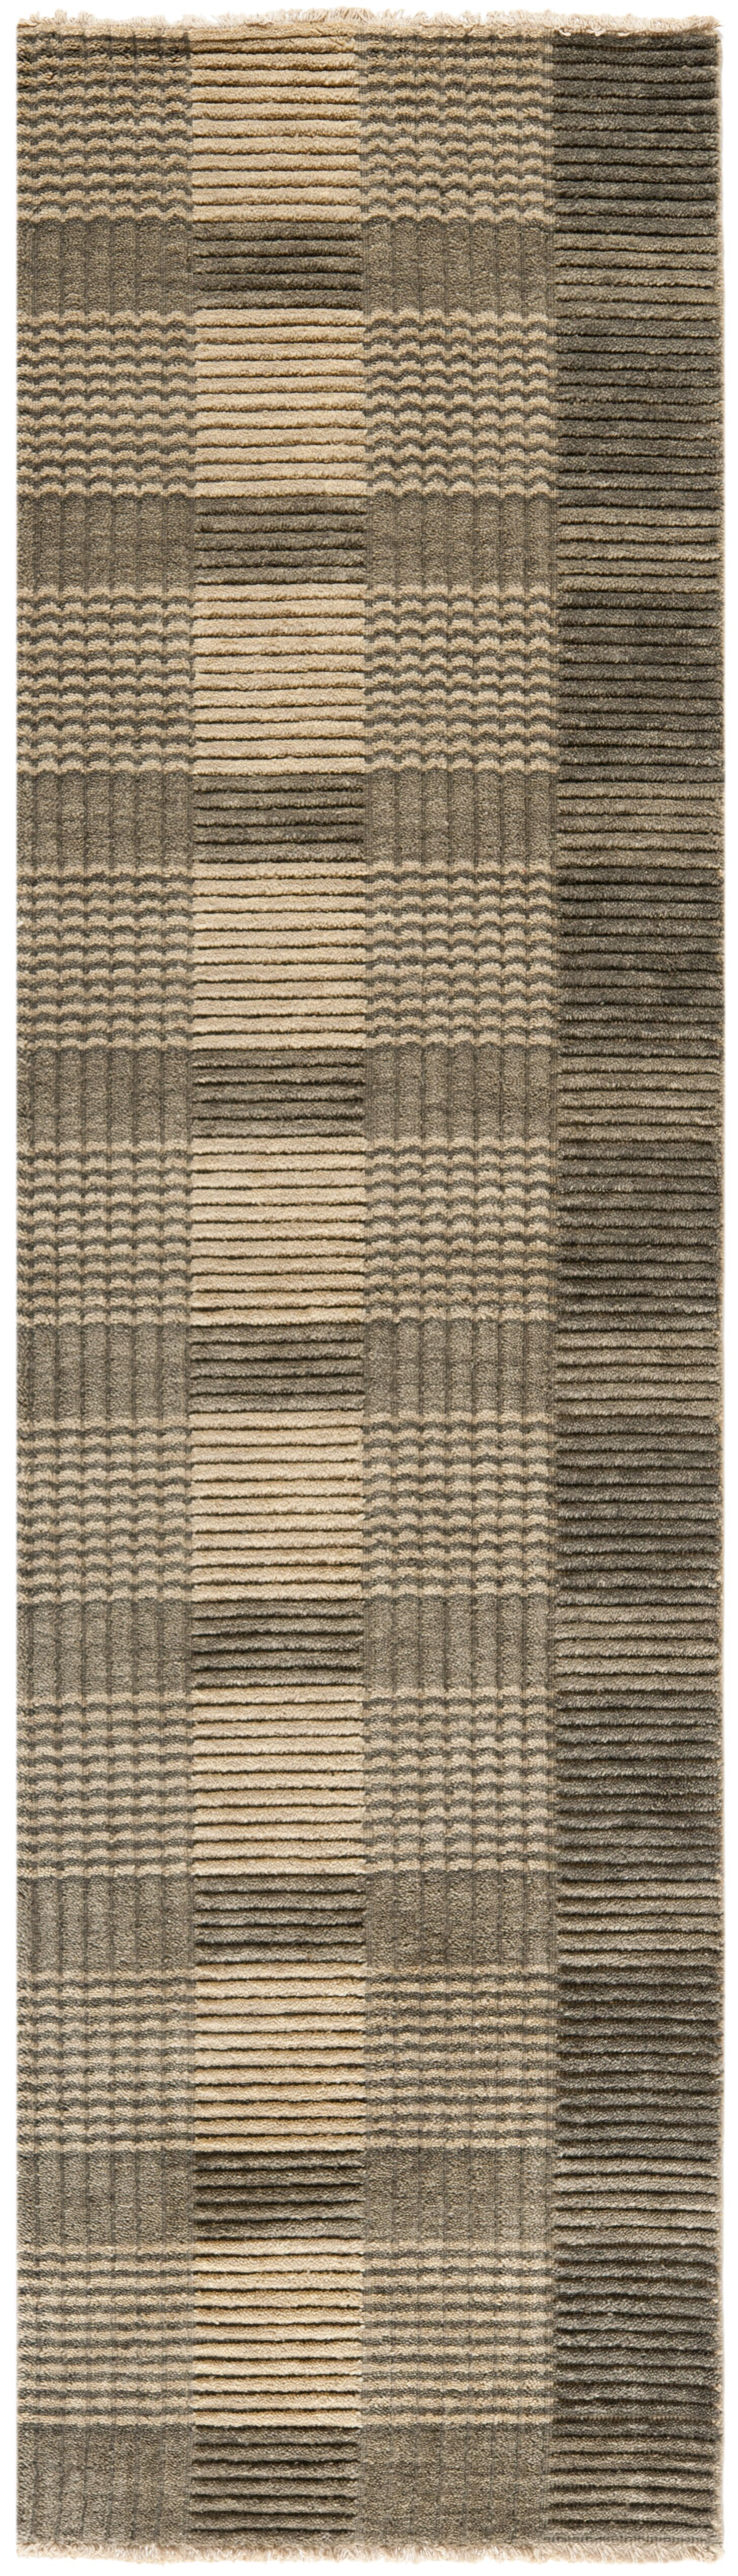 Apple Creek Hand-Knotted Charcoal Area Rug Rug Size: Runner 2' x 8'